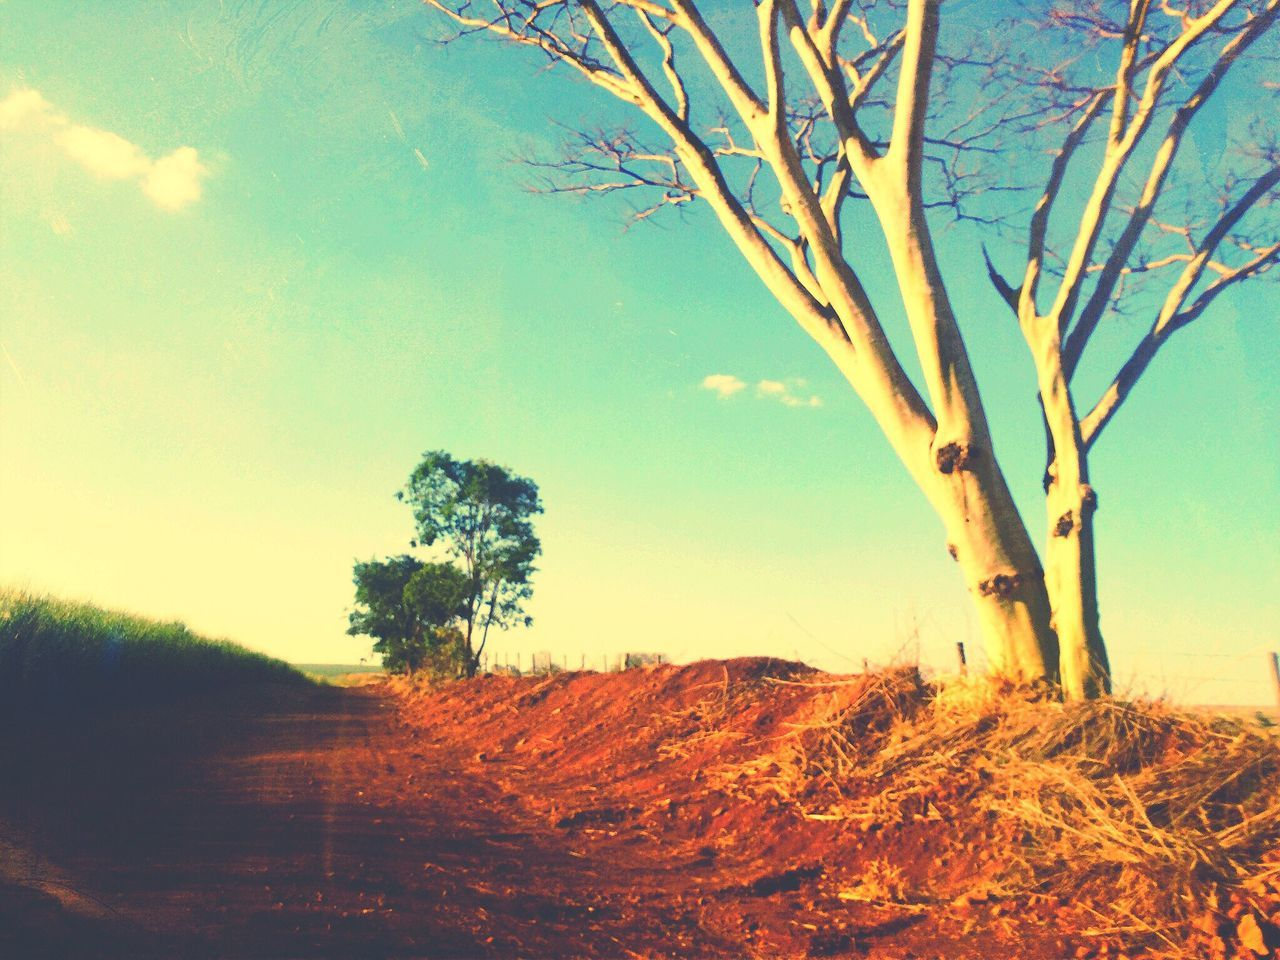 landscape, nature, tree, tranquility, scenics, no people, beauty in nature, sky, outdoors, day